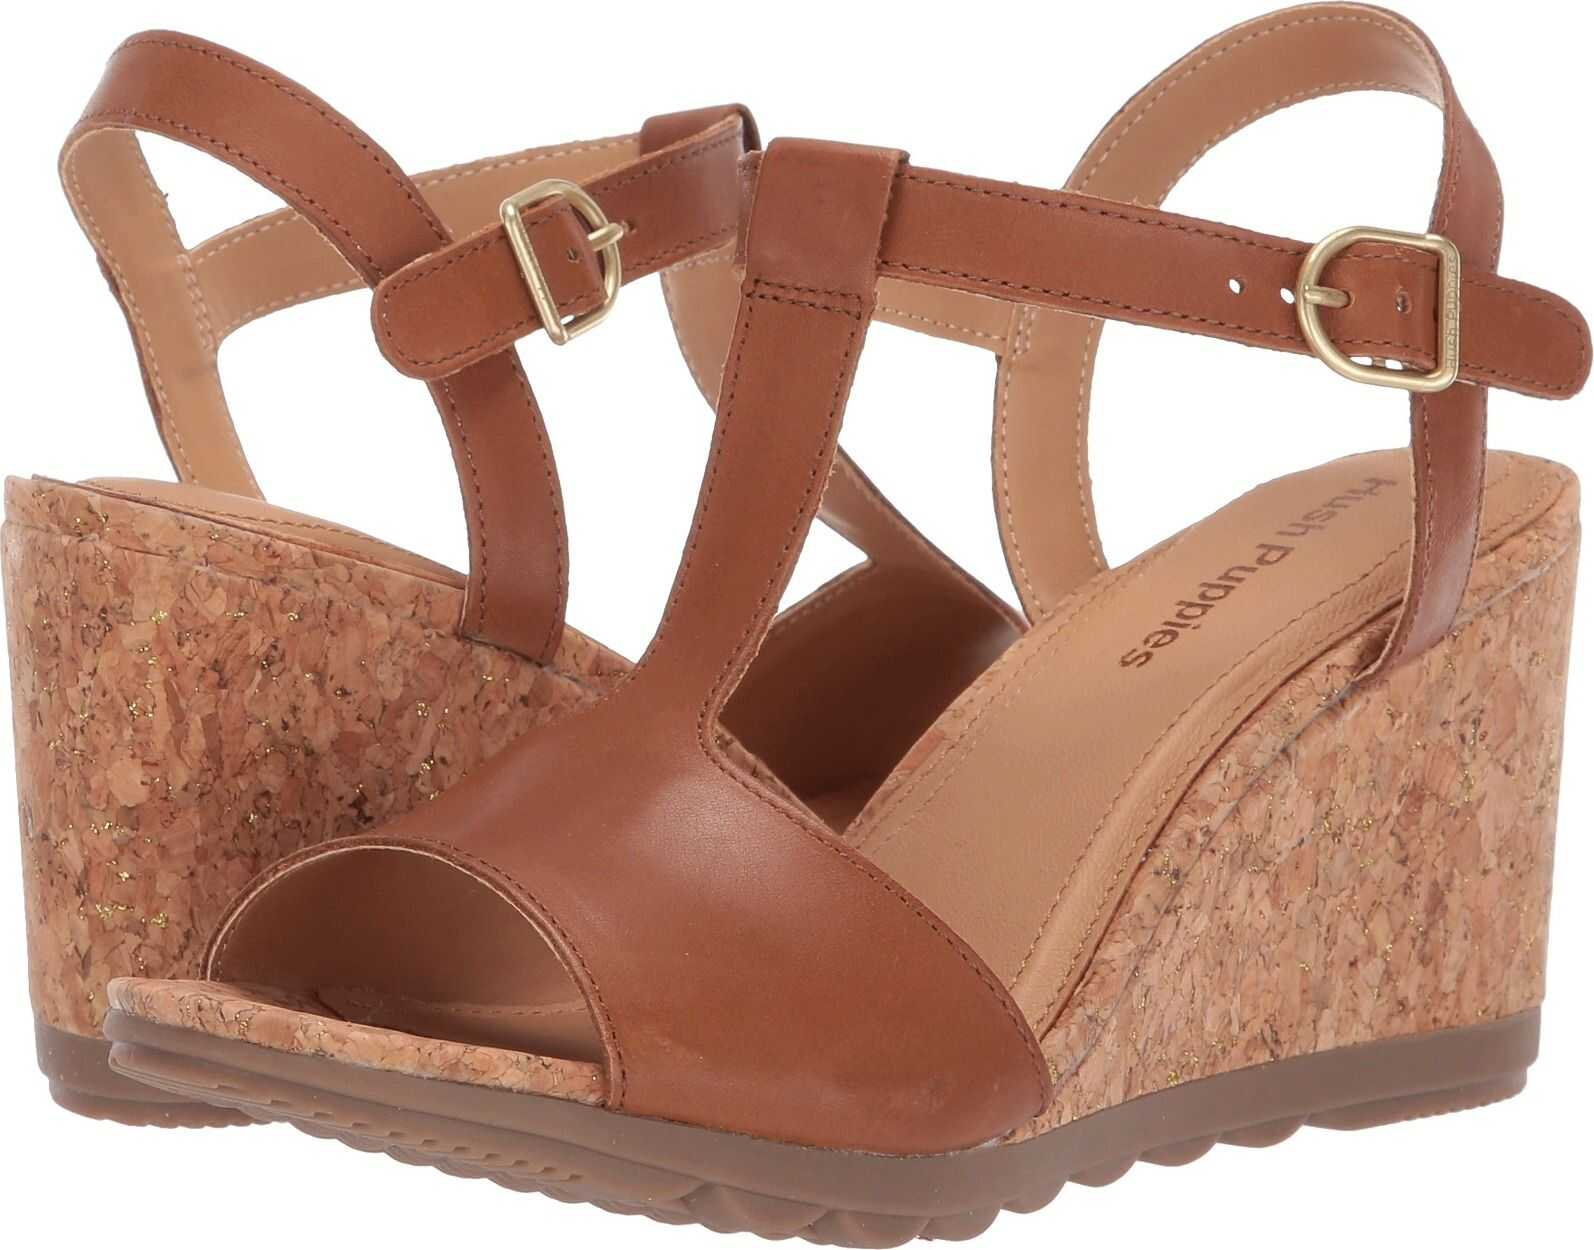 Hush Puppies Pekingese T-Strap Tan Leather